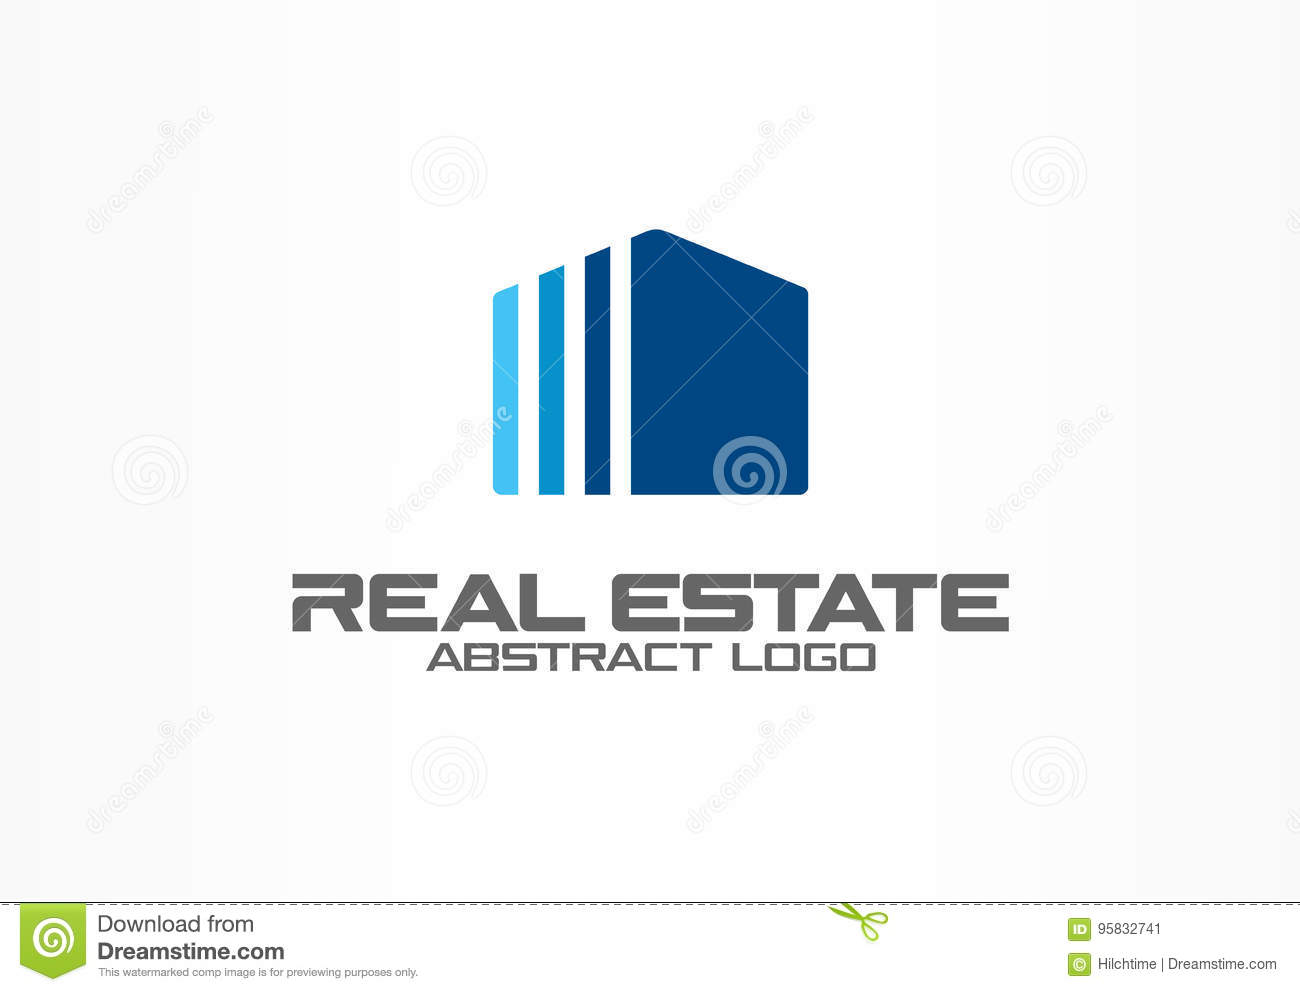 Abstract logo for business company. Corporate identity design element. Real estate service, construction, agent logotype